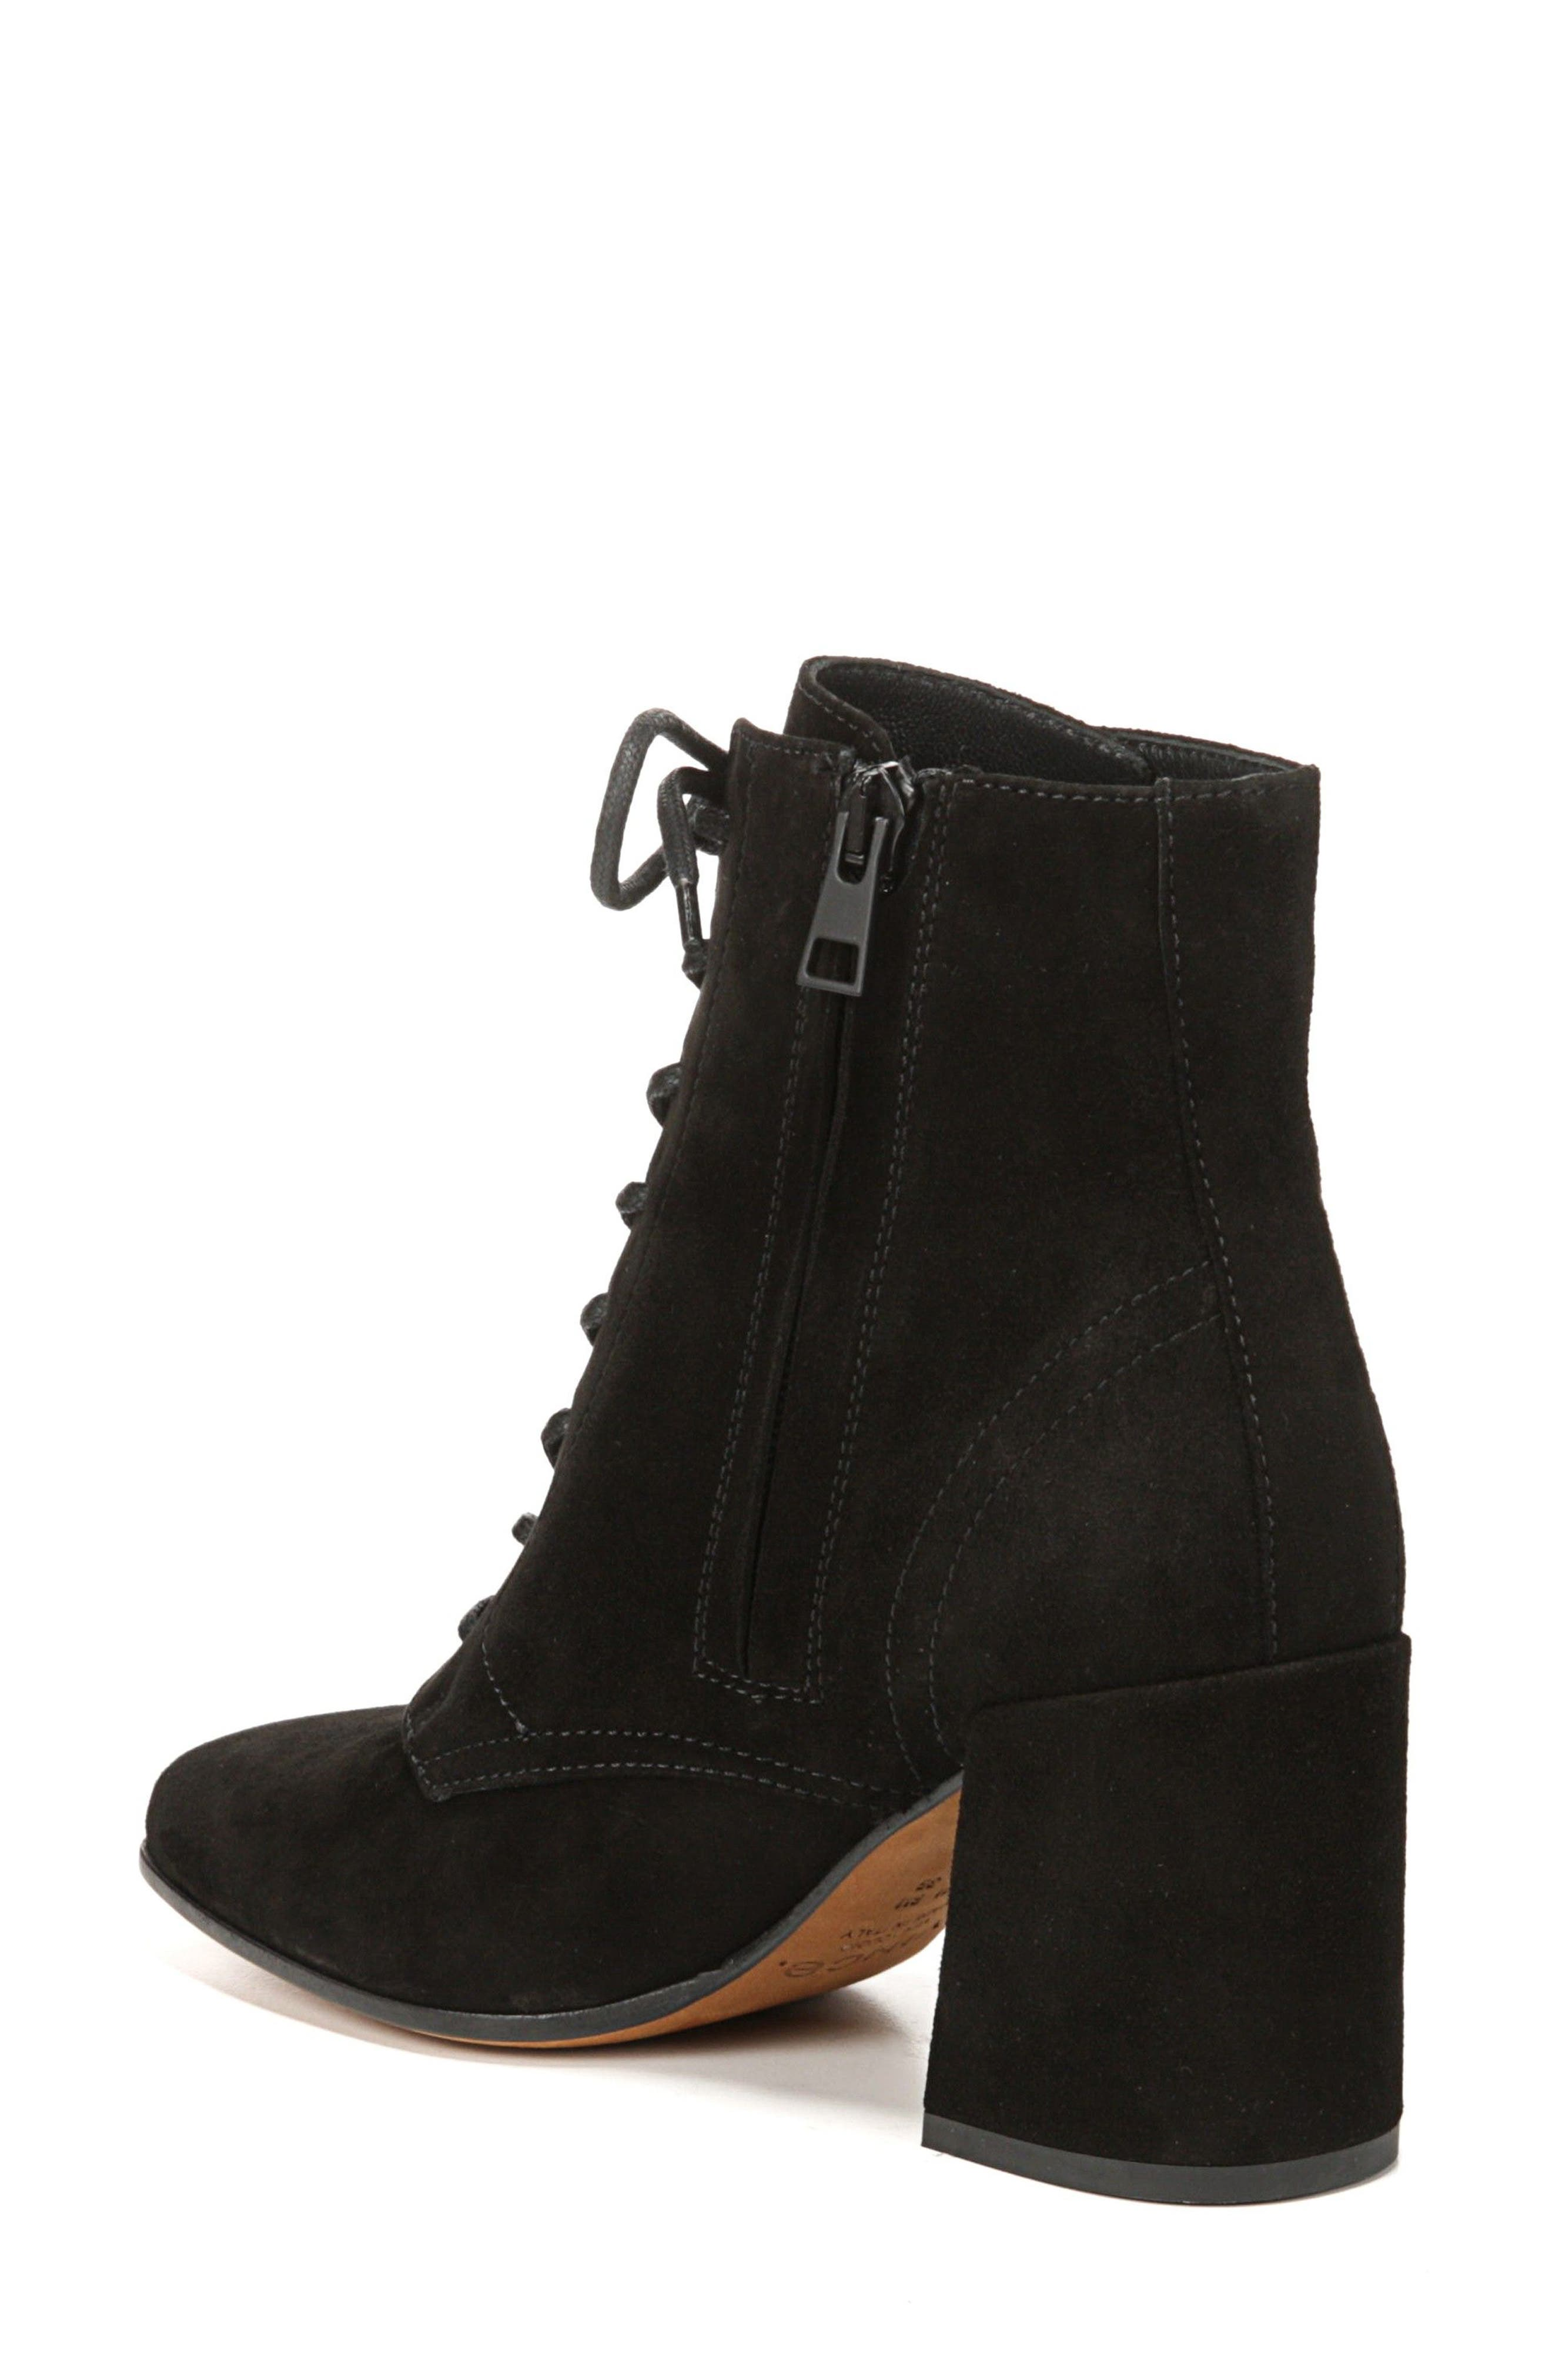 Halle Flare Heel Bootie,                             Alternate thumbnail 2, color,                             001